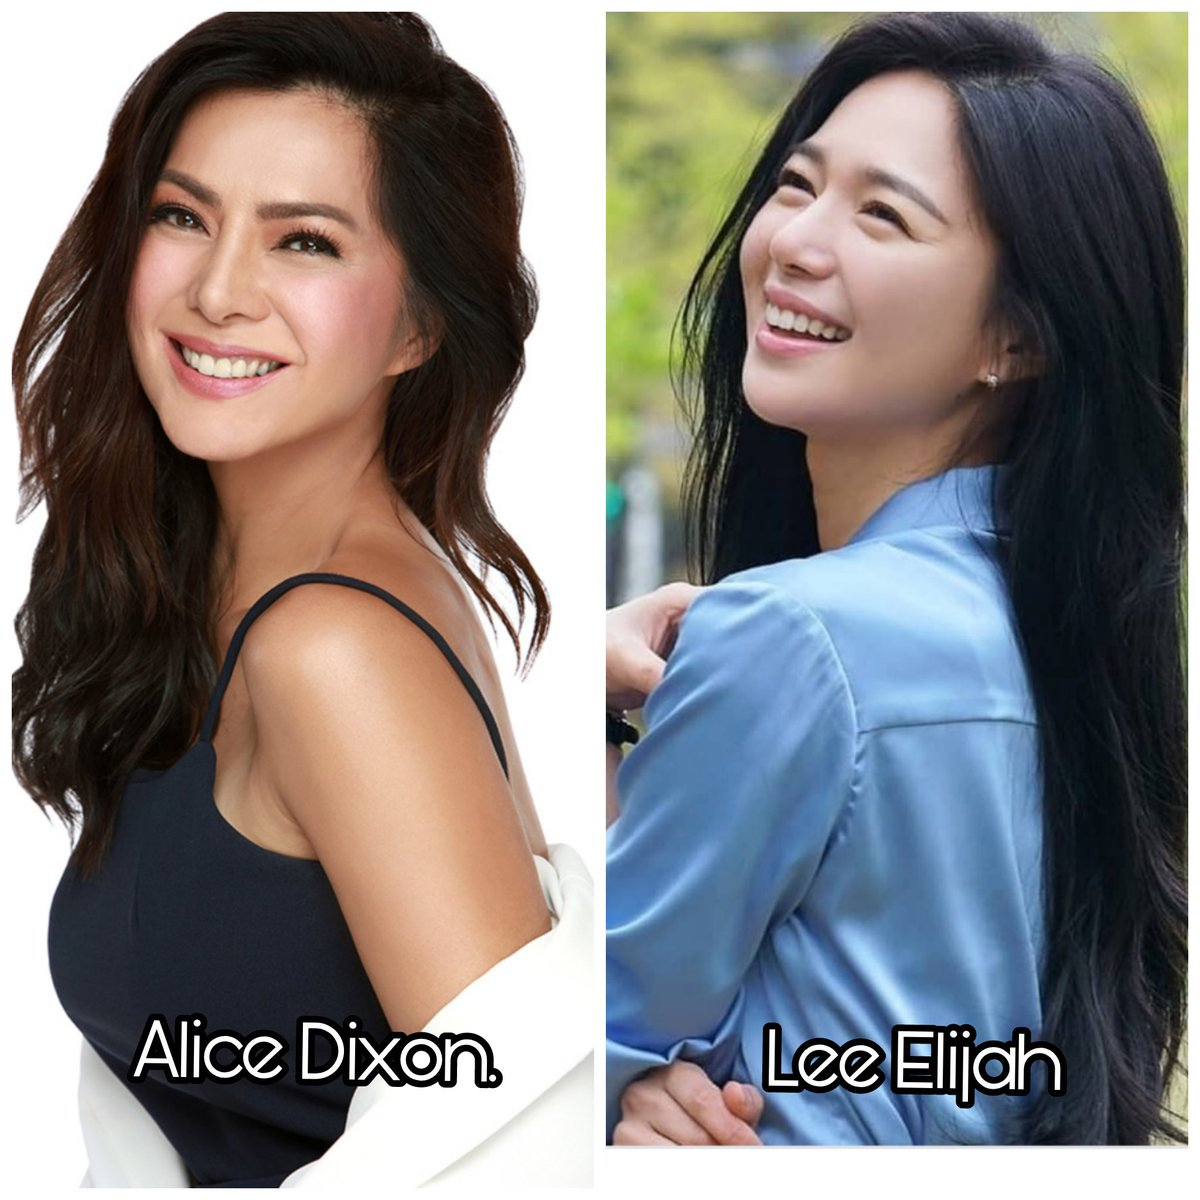 Elijah Lee Korean Actress Posted By Ethan Simpson Join facebook to connect with lee elijah and others you may know. elijah lee korean actress posted by